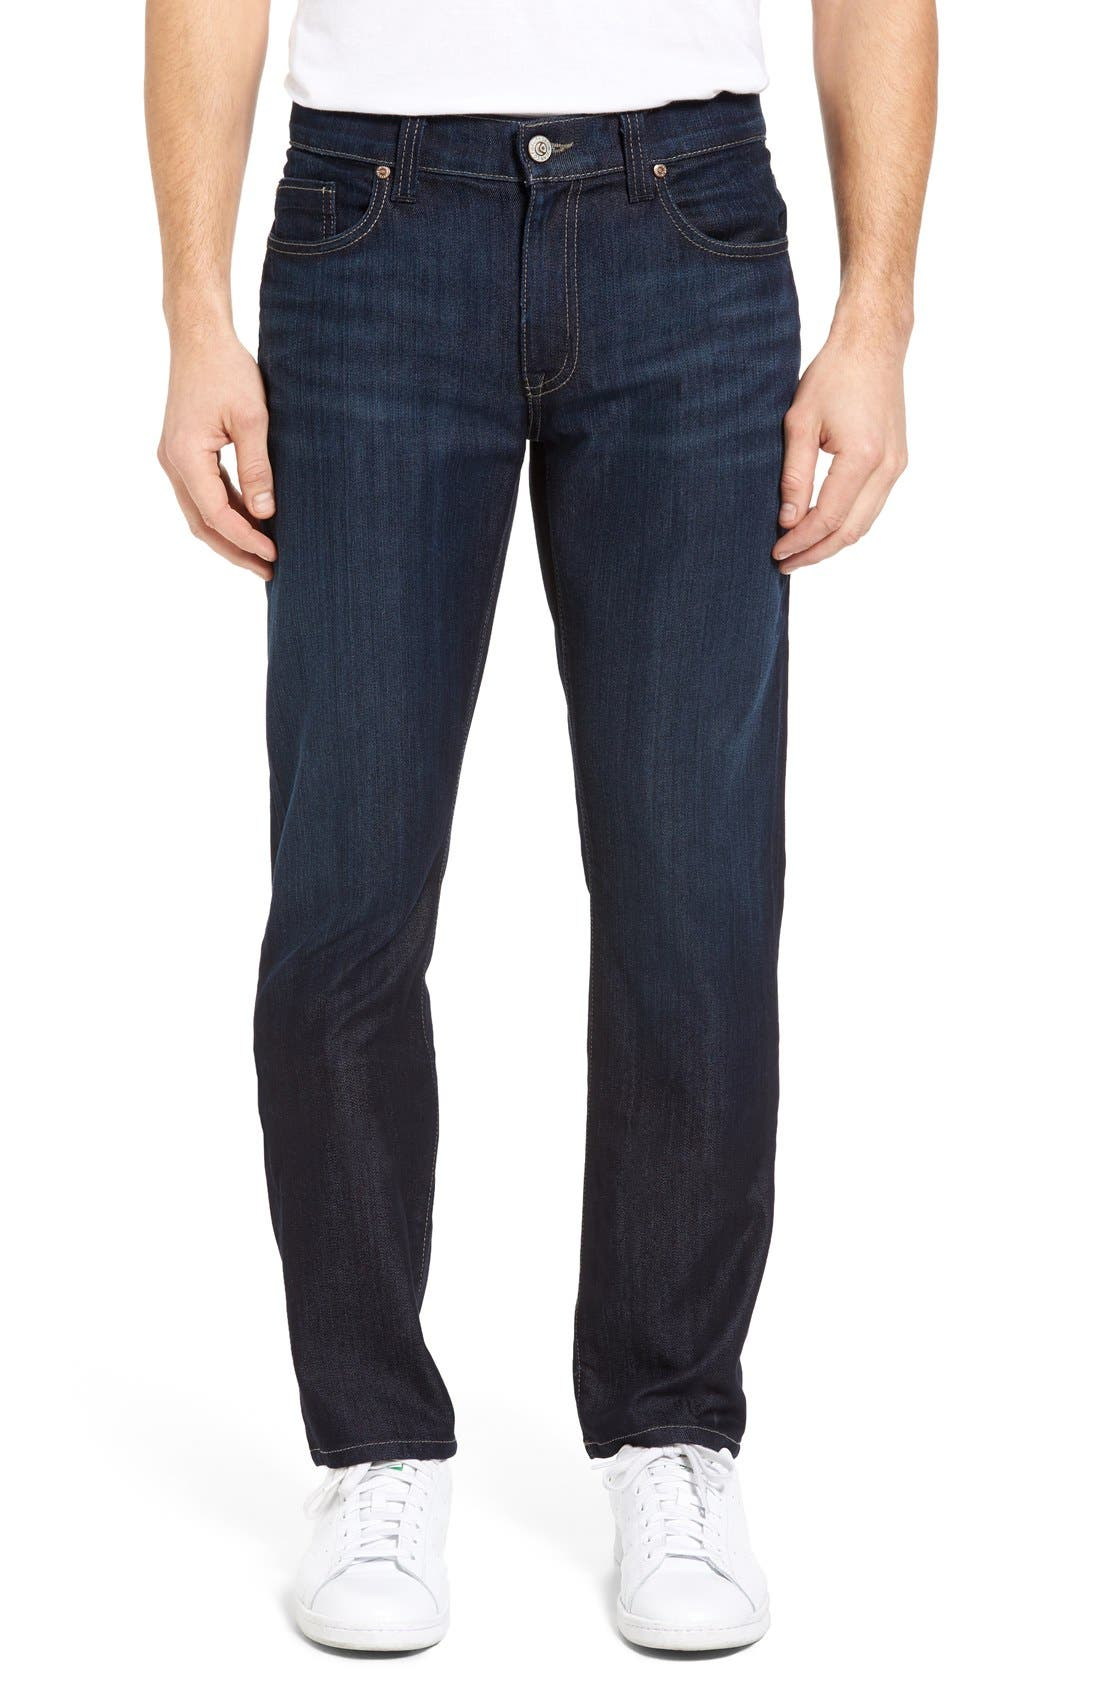 Impala Straight Leg Jeans,                             Main thumbnail 1, color,                             400